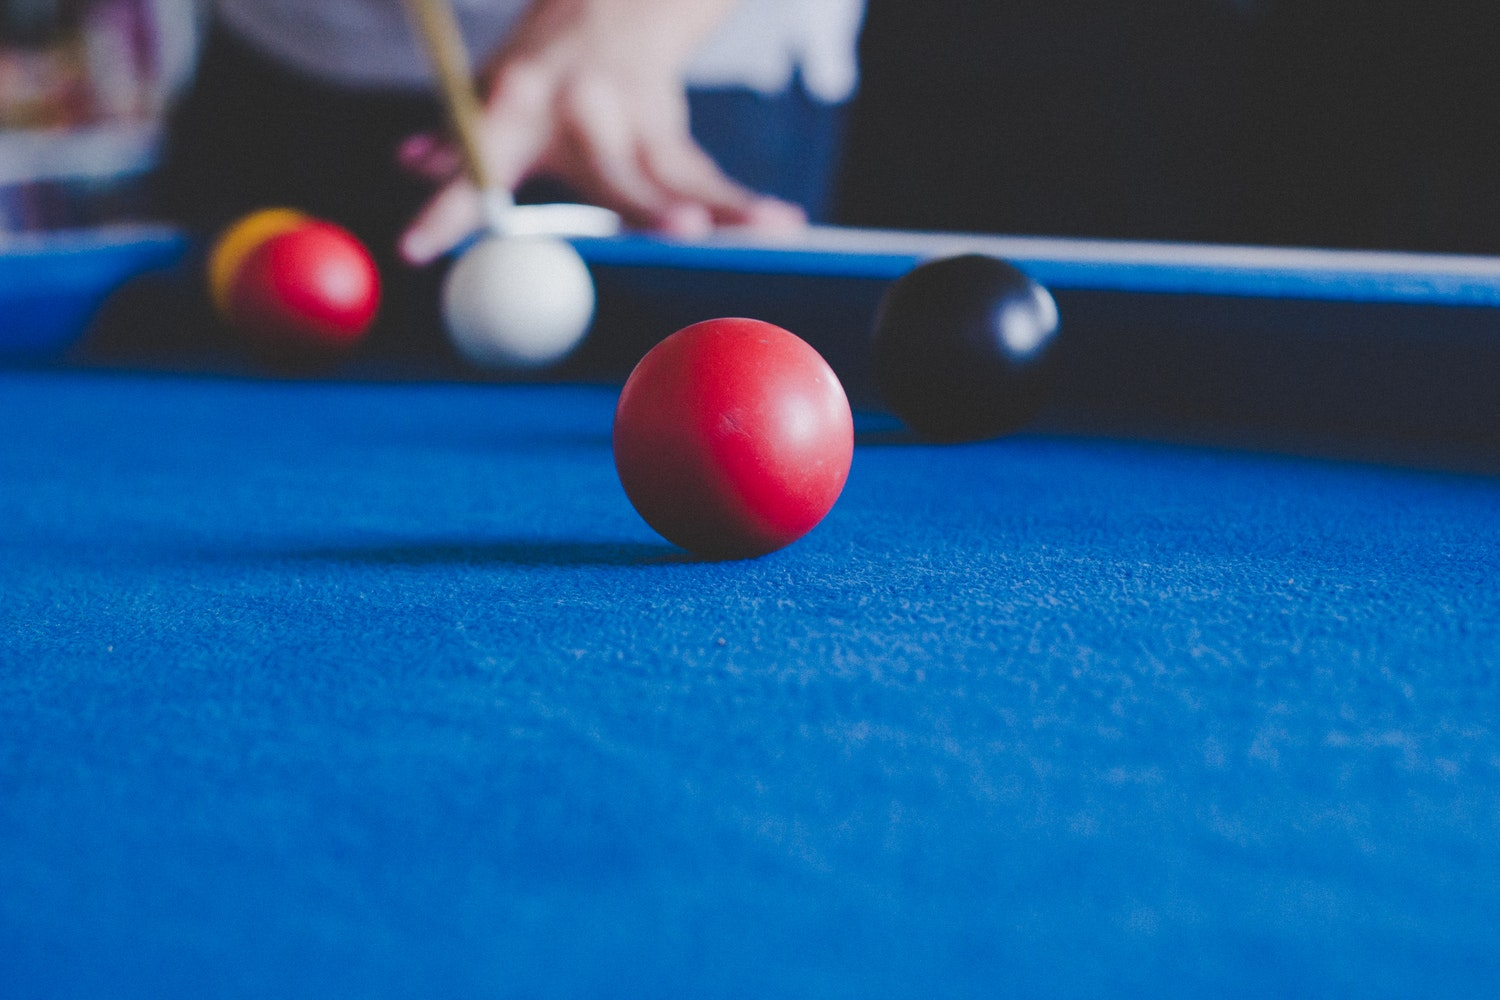 How To Buy The Best Billiards Table